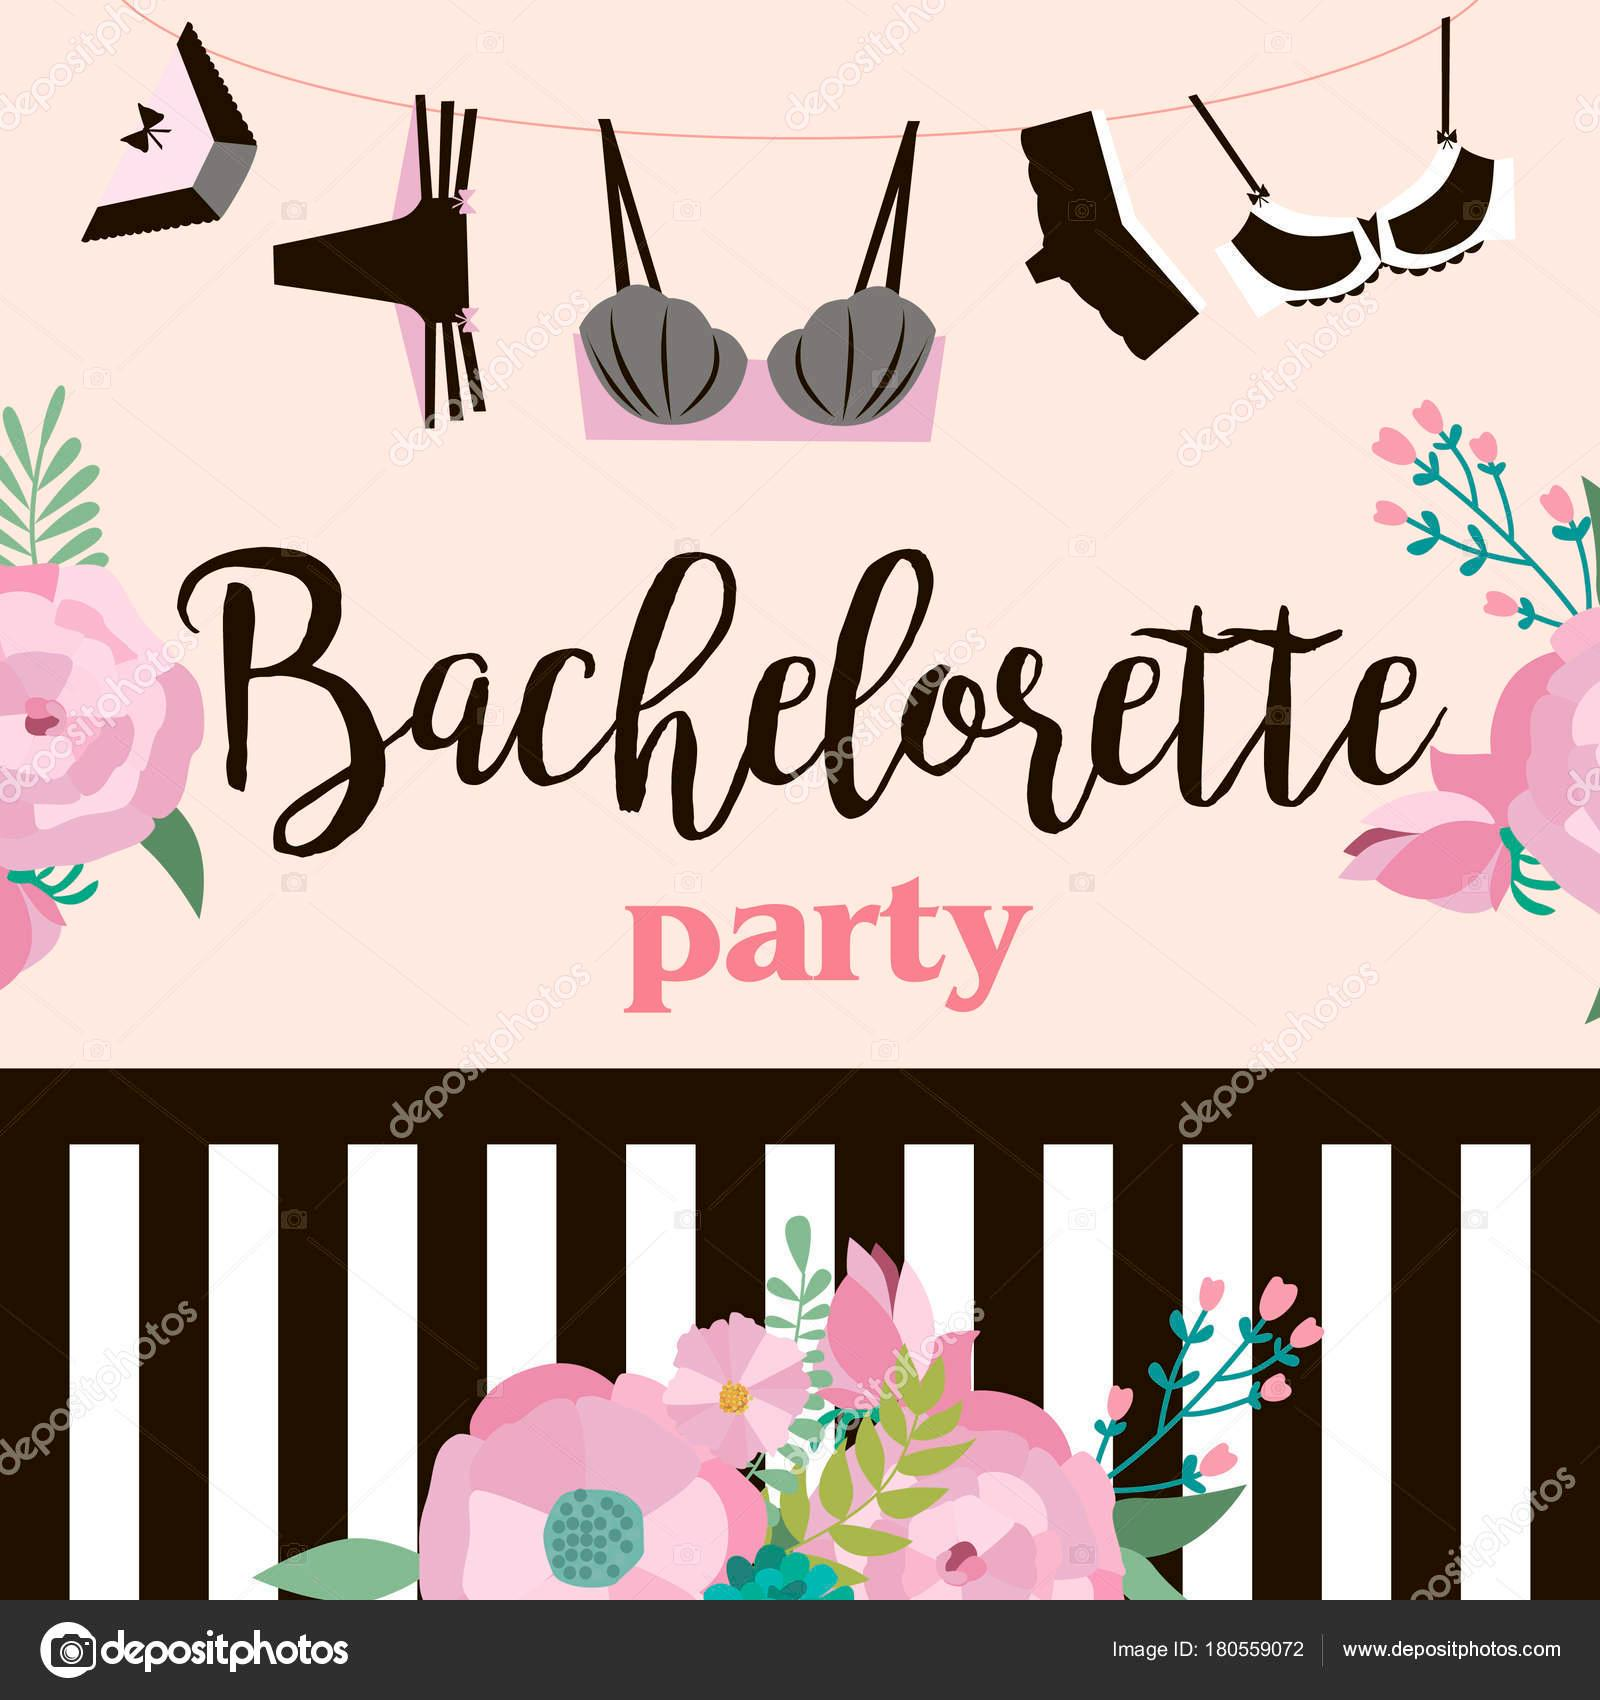 Bachelorette Party Invitation Cards